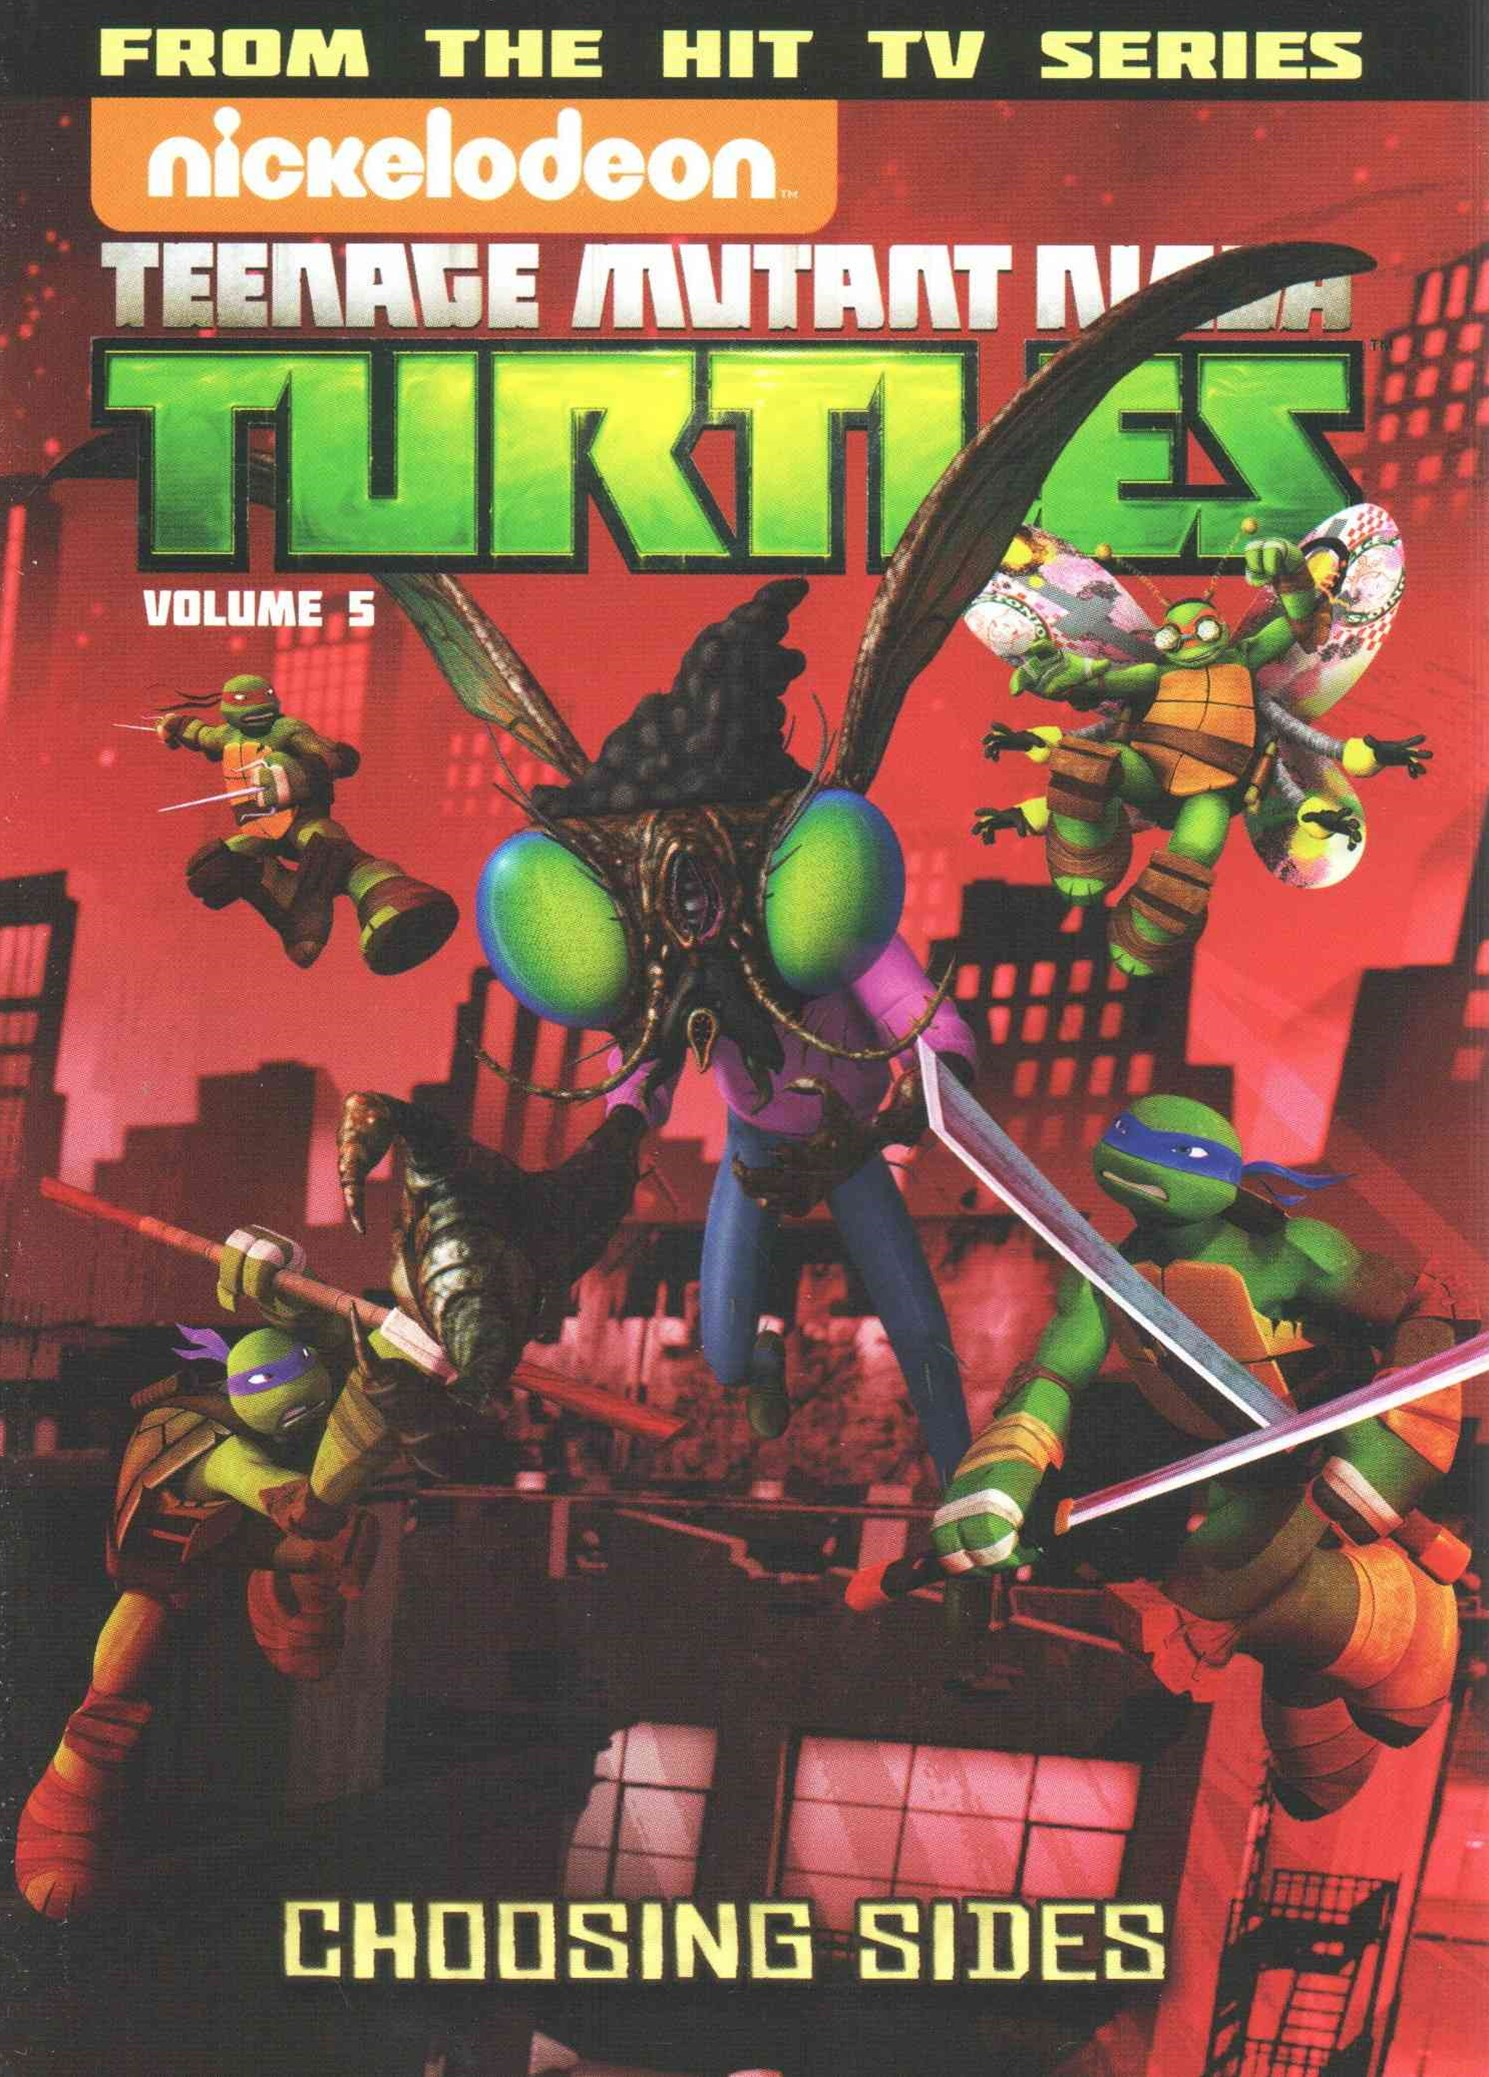 Teenage Mutant Ninja Turtles - Choosing Sides